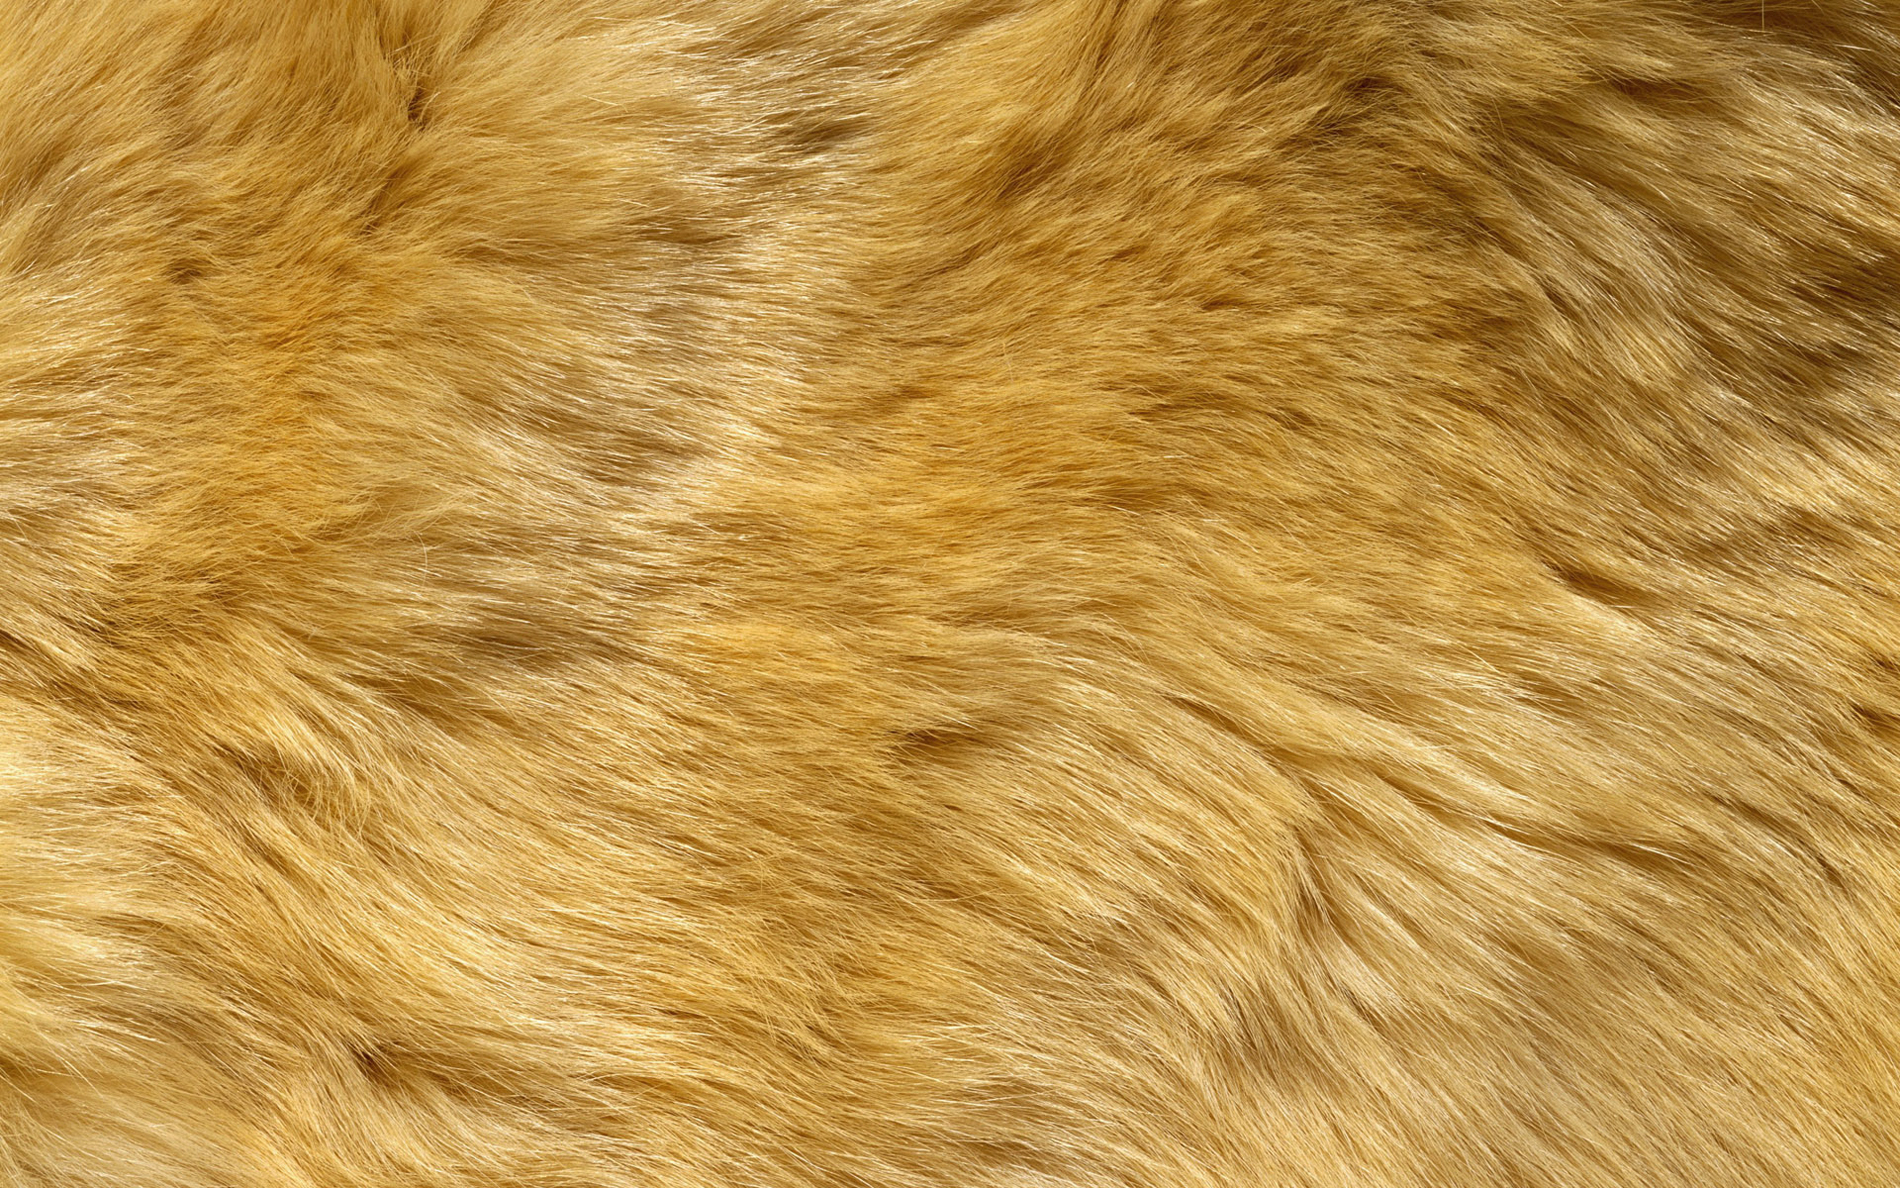 Yellow_Fur_Background.jpg?m=1432120714.